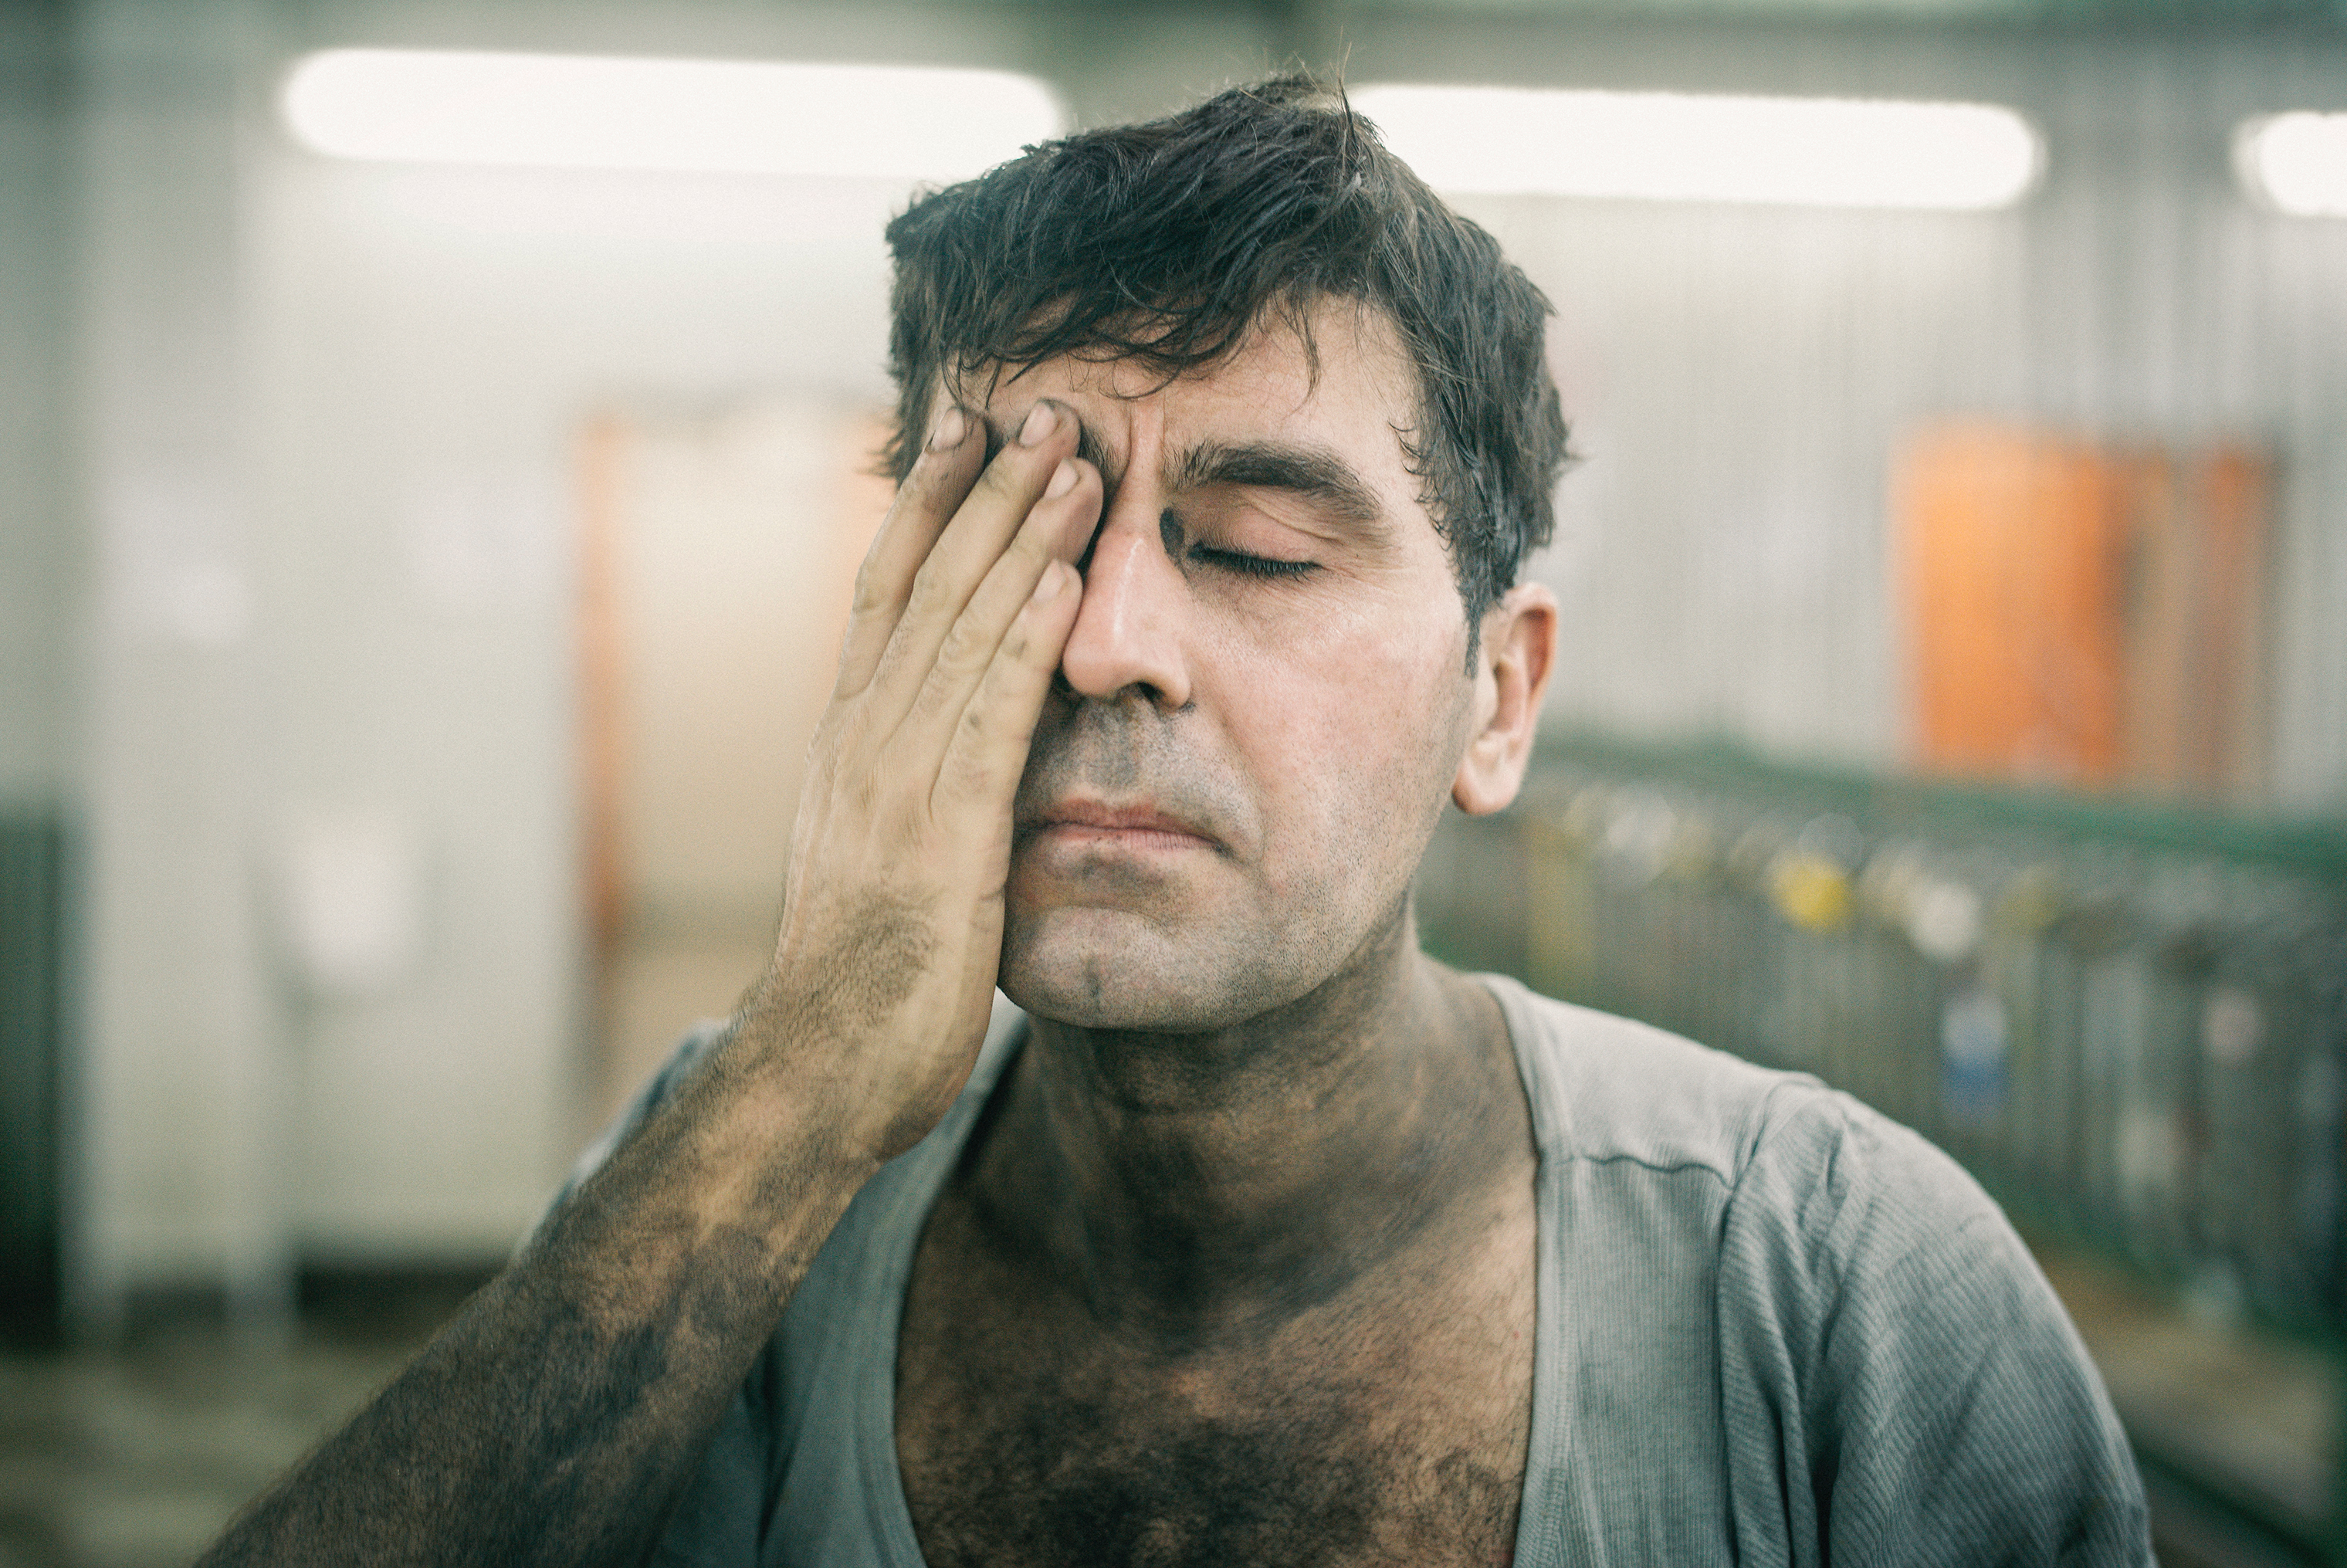 Cin, a Turkish miner, washes coal dust from his face after a night shift in December 2017.